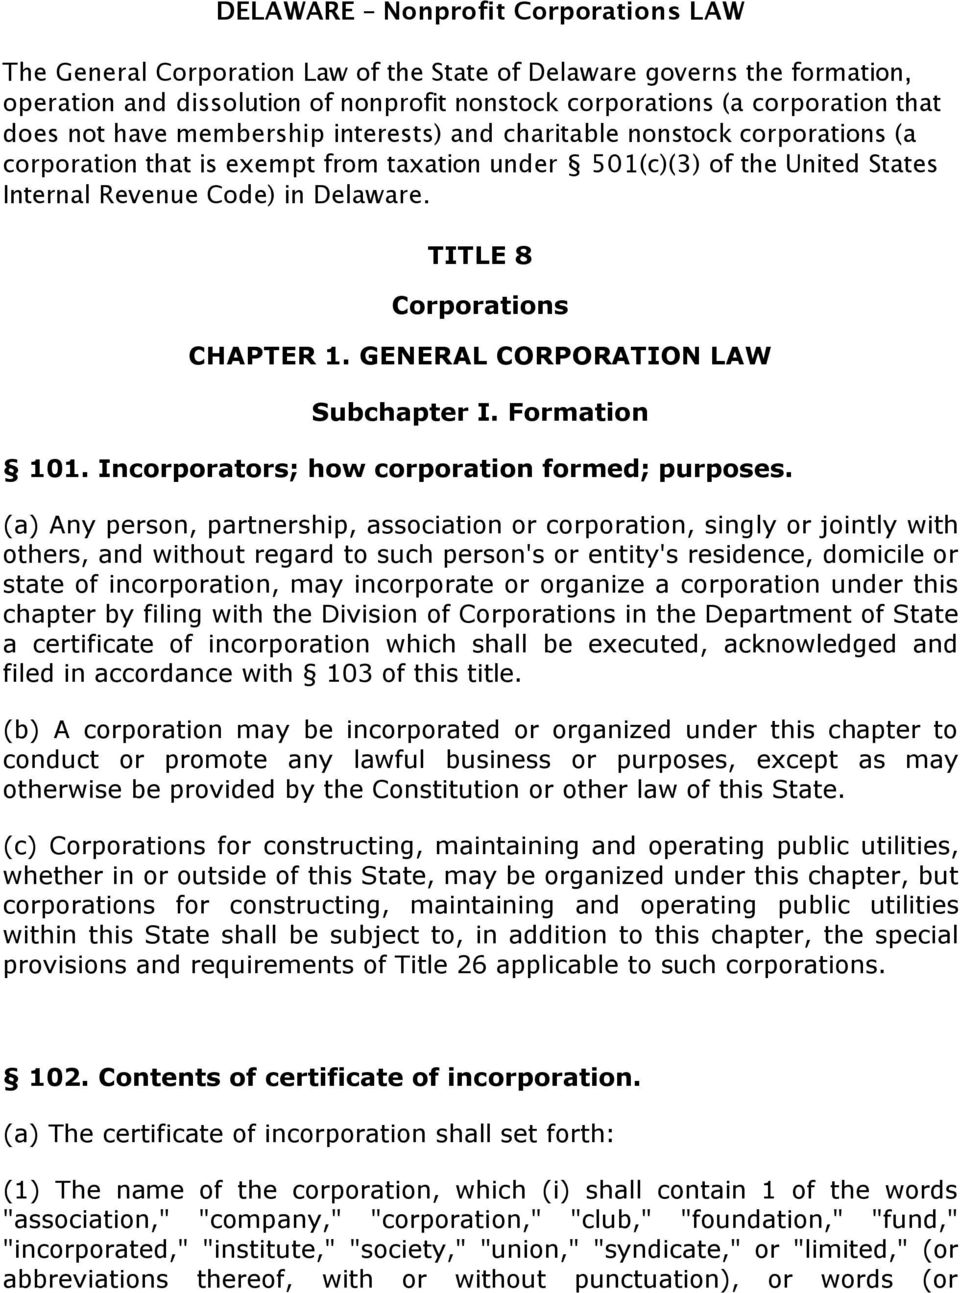 TITLE 8 Corporations CHAPTER 1. GENERAL CORPORATION LAW Subchapter I. Formation 101. Incorporators; how corporation formed; purposes.